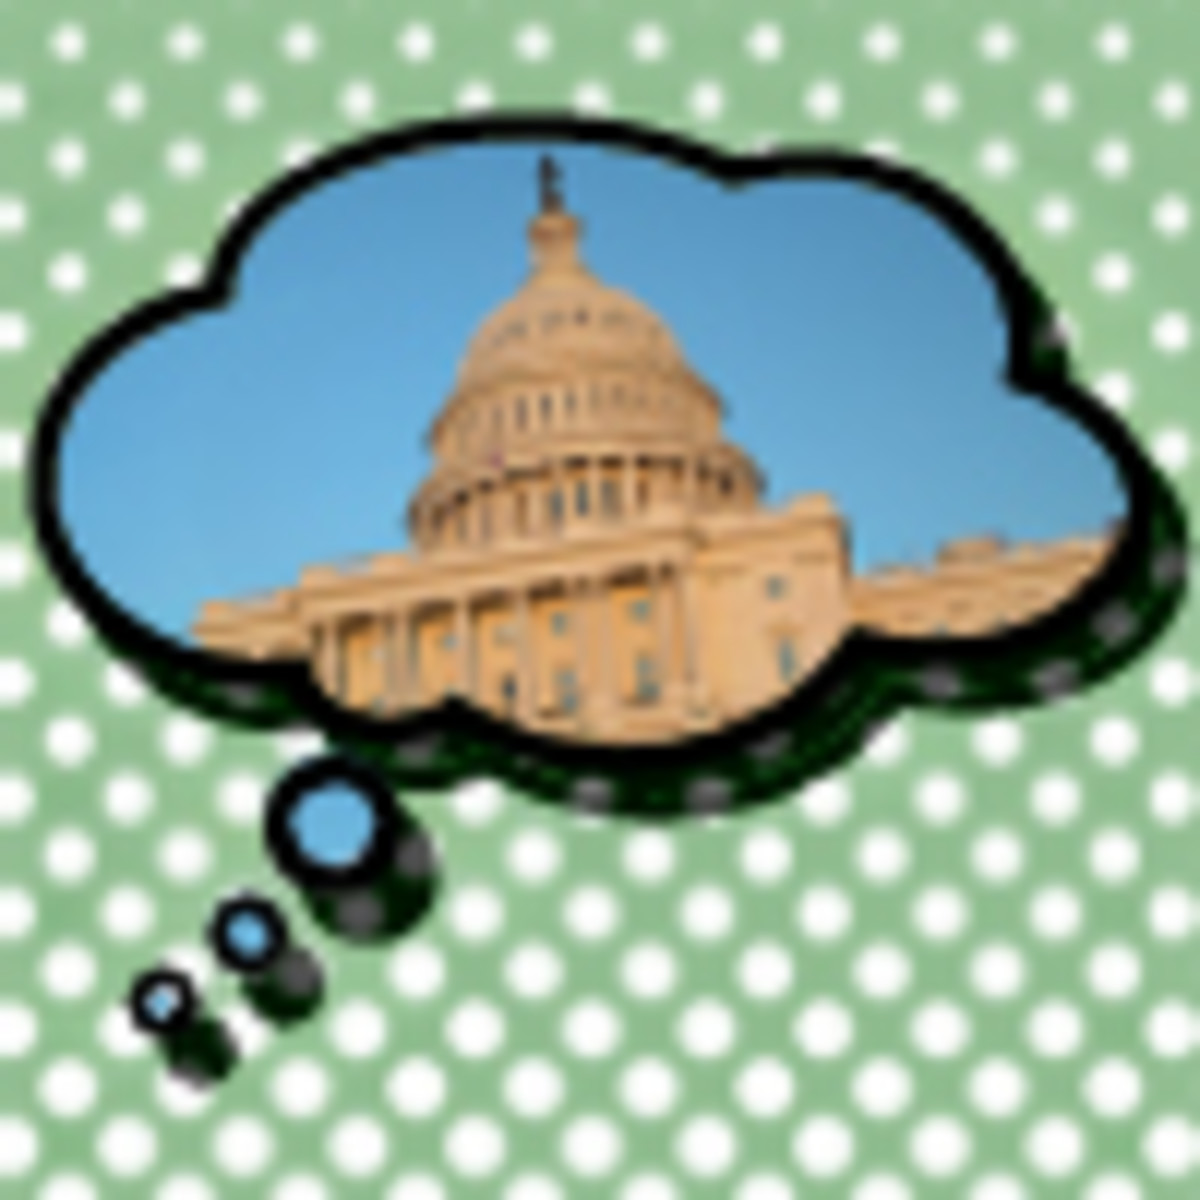 THE IDEA LOBBYMiller-McCune's Washington correspondent Emily Badger follows the ideas informing, explaining and influencing government, from the local think tank circuit to academic research that shapes D.C. policy from afar.